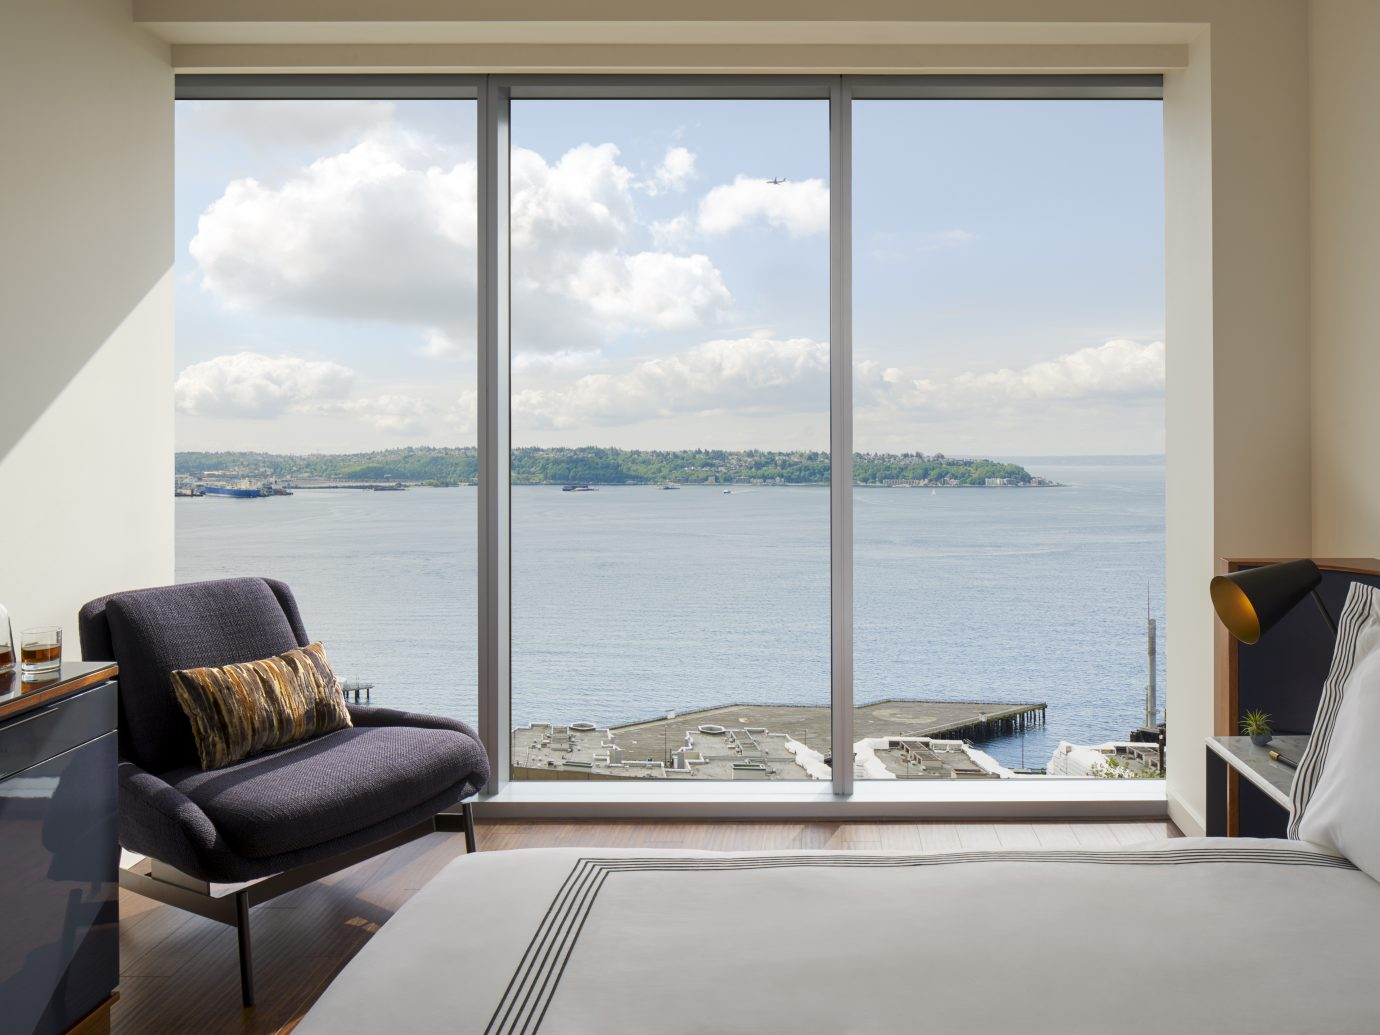 Interior room space at Thompson Seattle looking over body of water